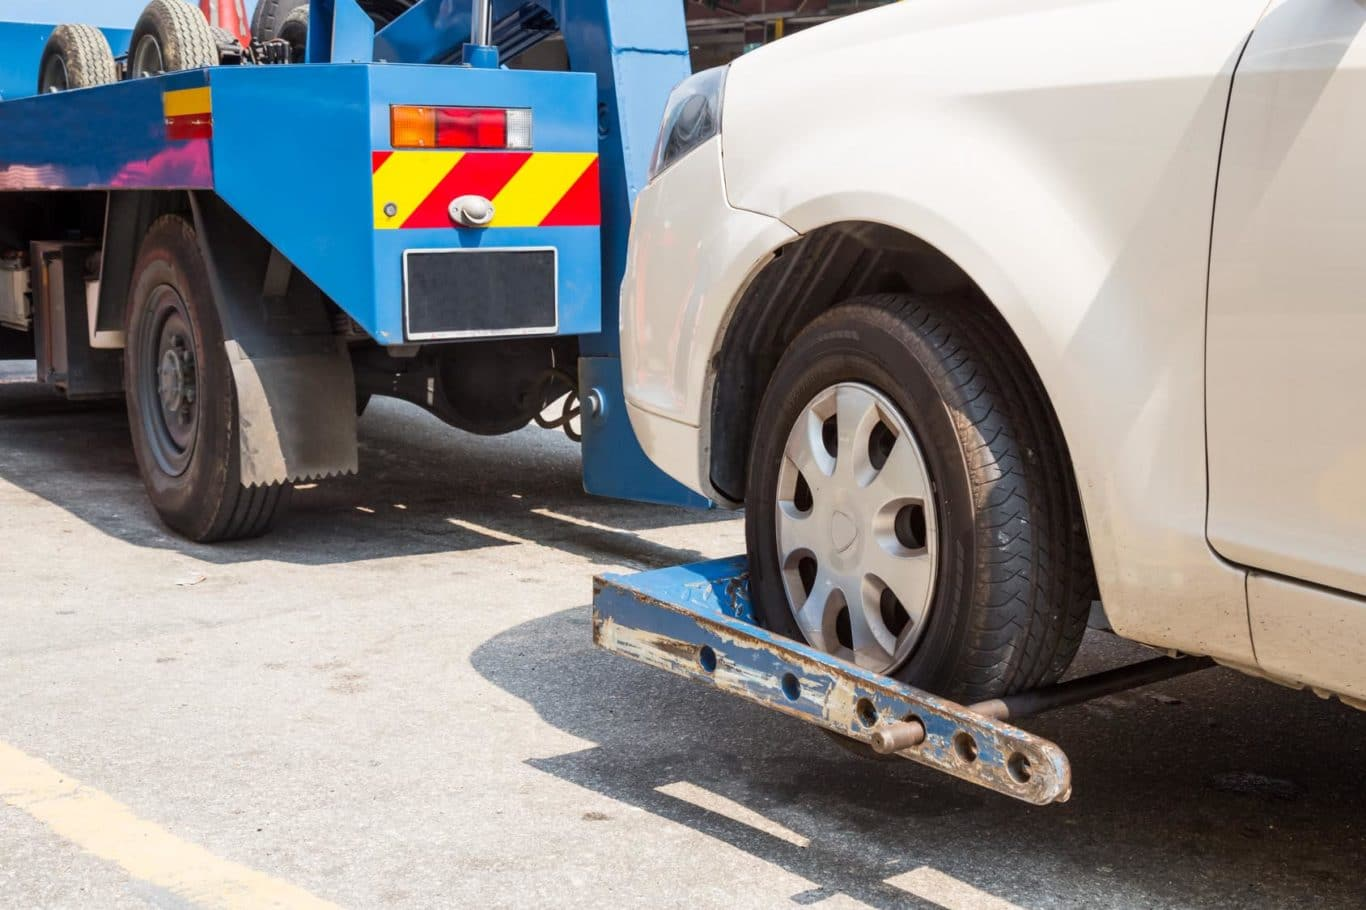 Artane expert Towing services